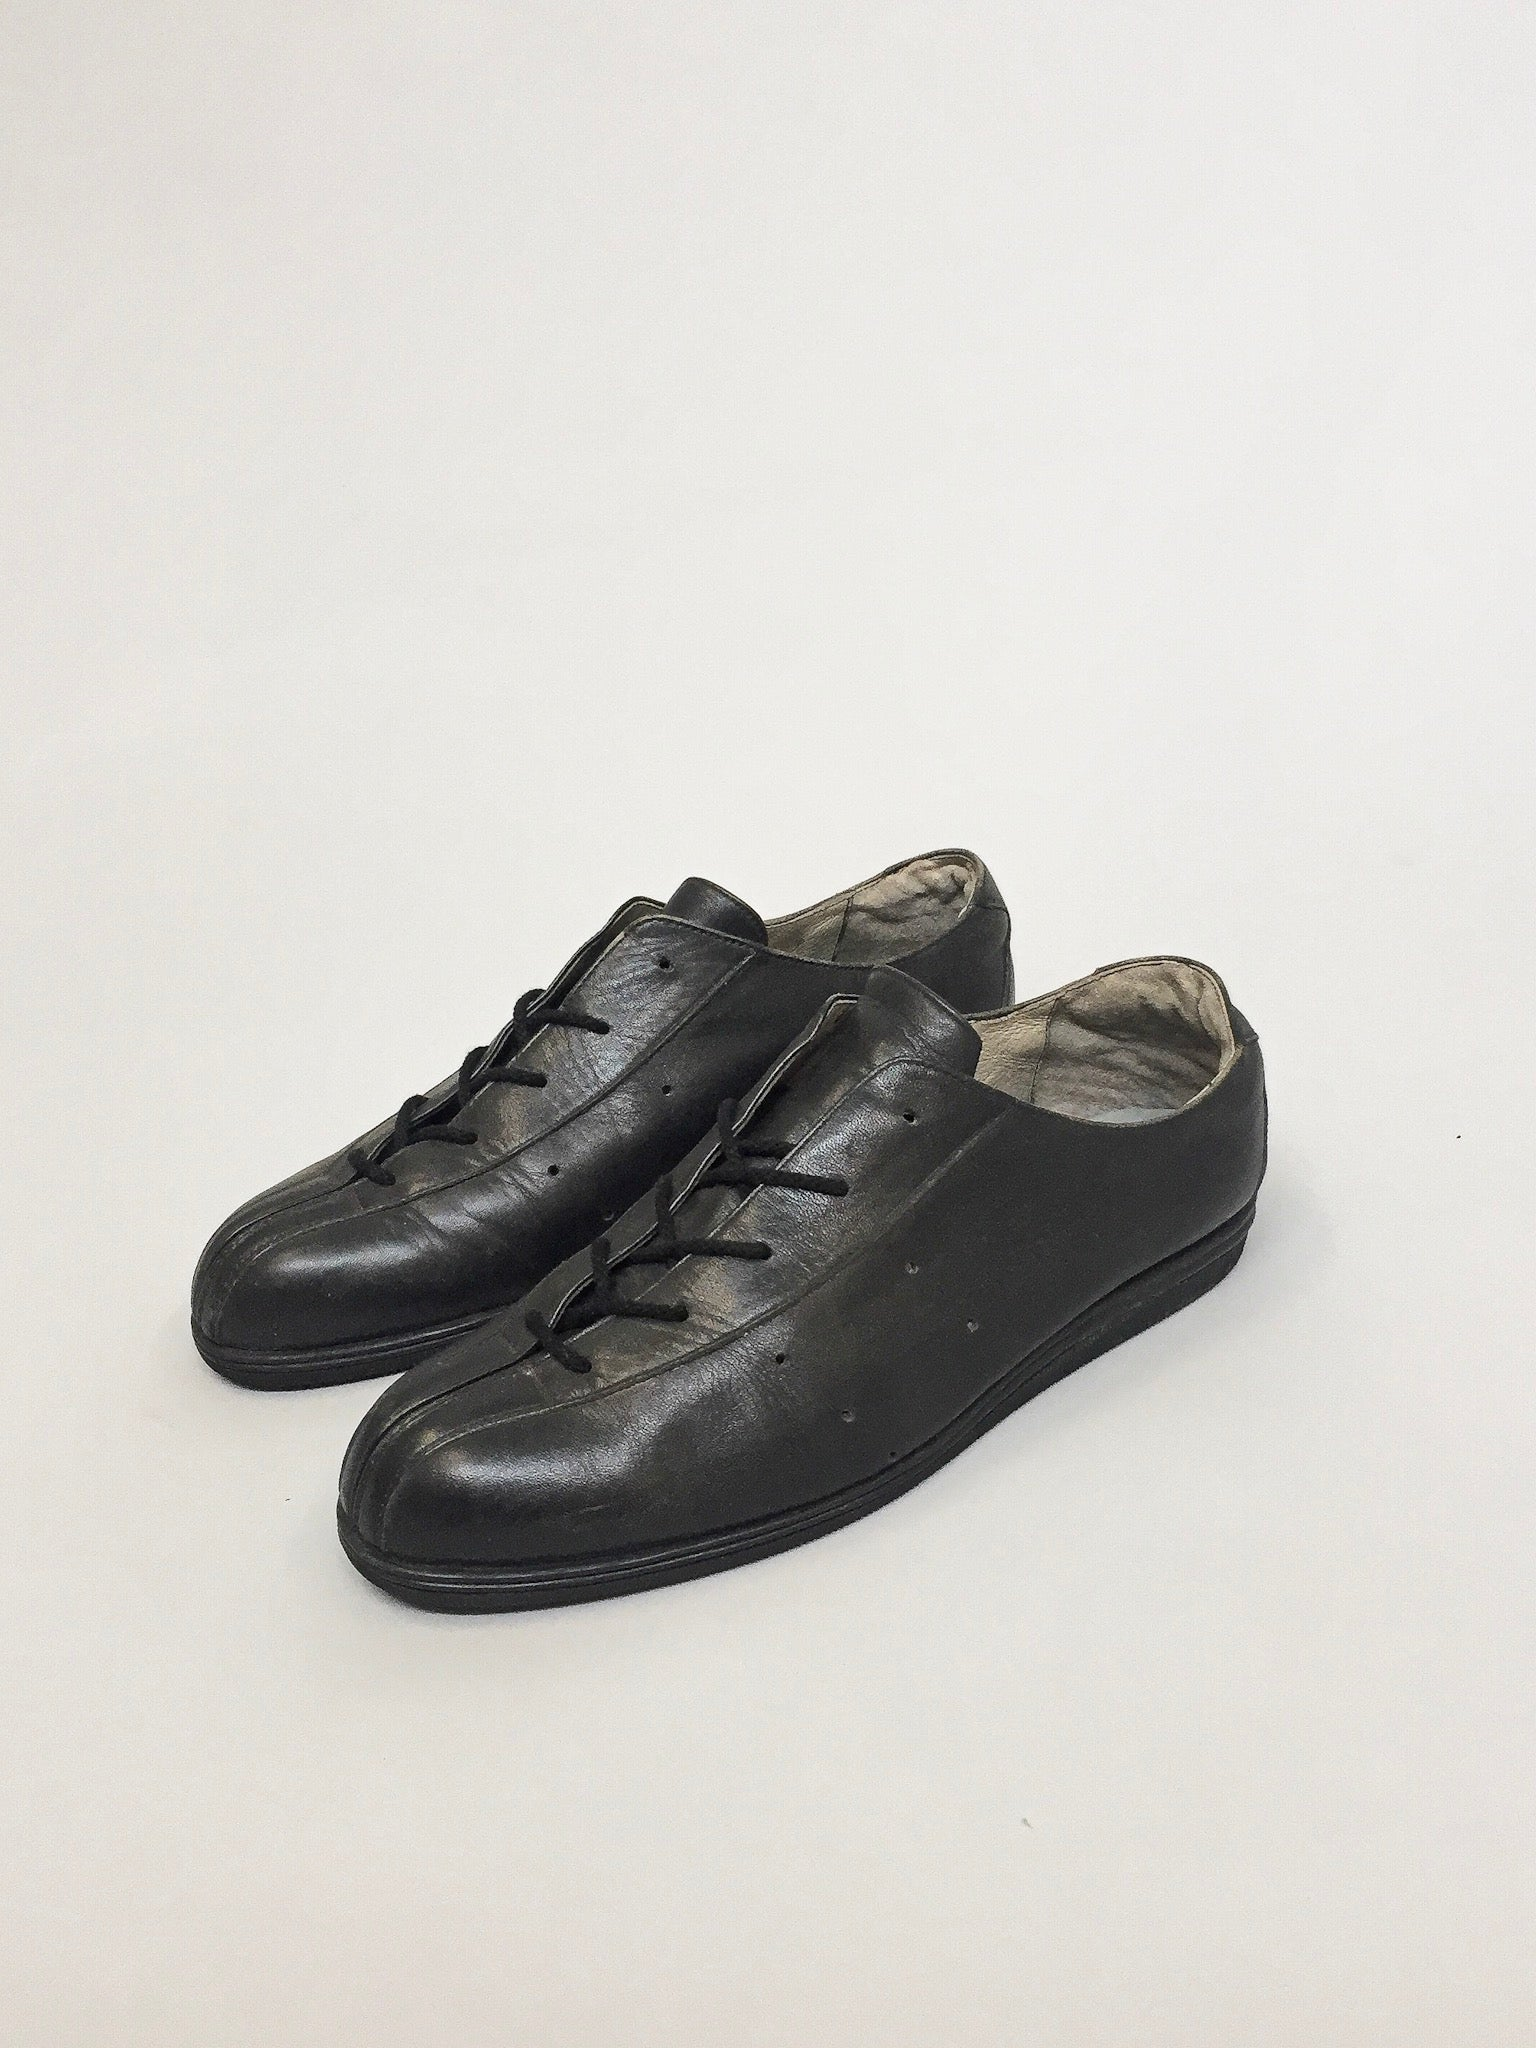 Issey Miyake Leather Shoes with laces